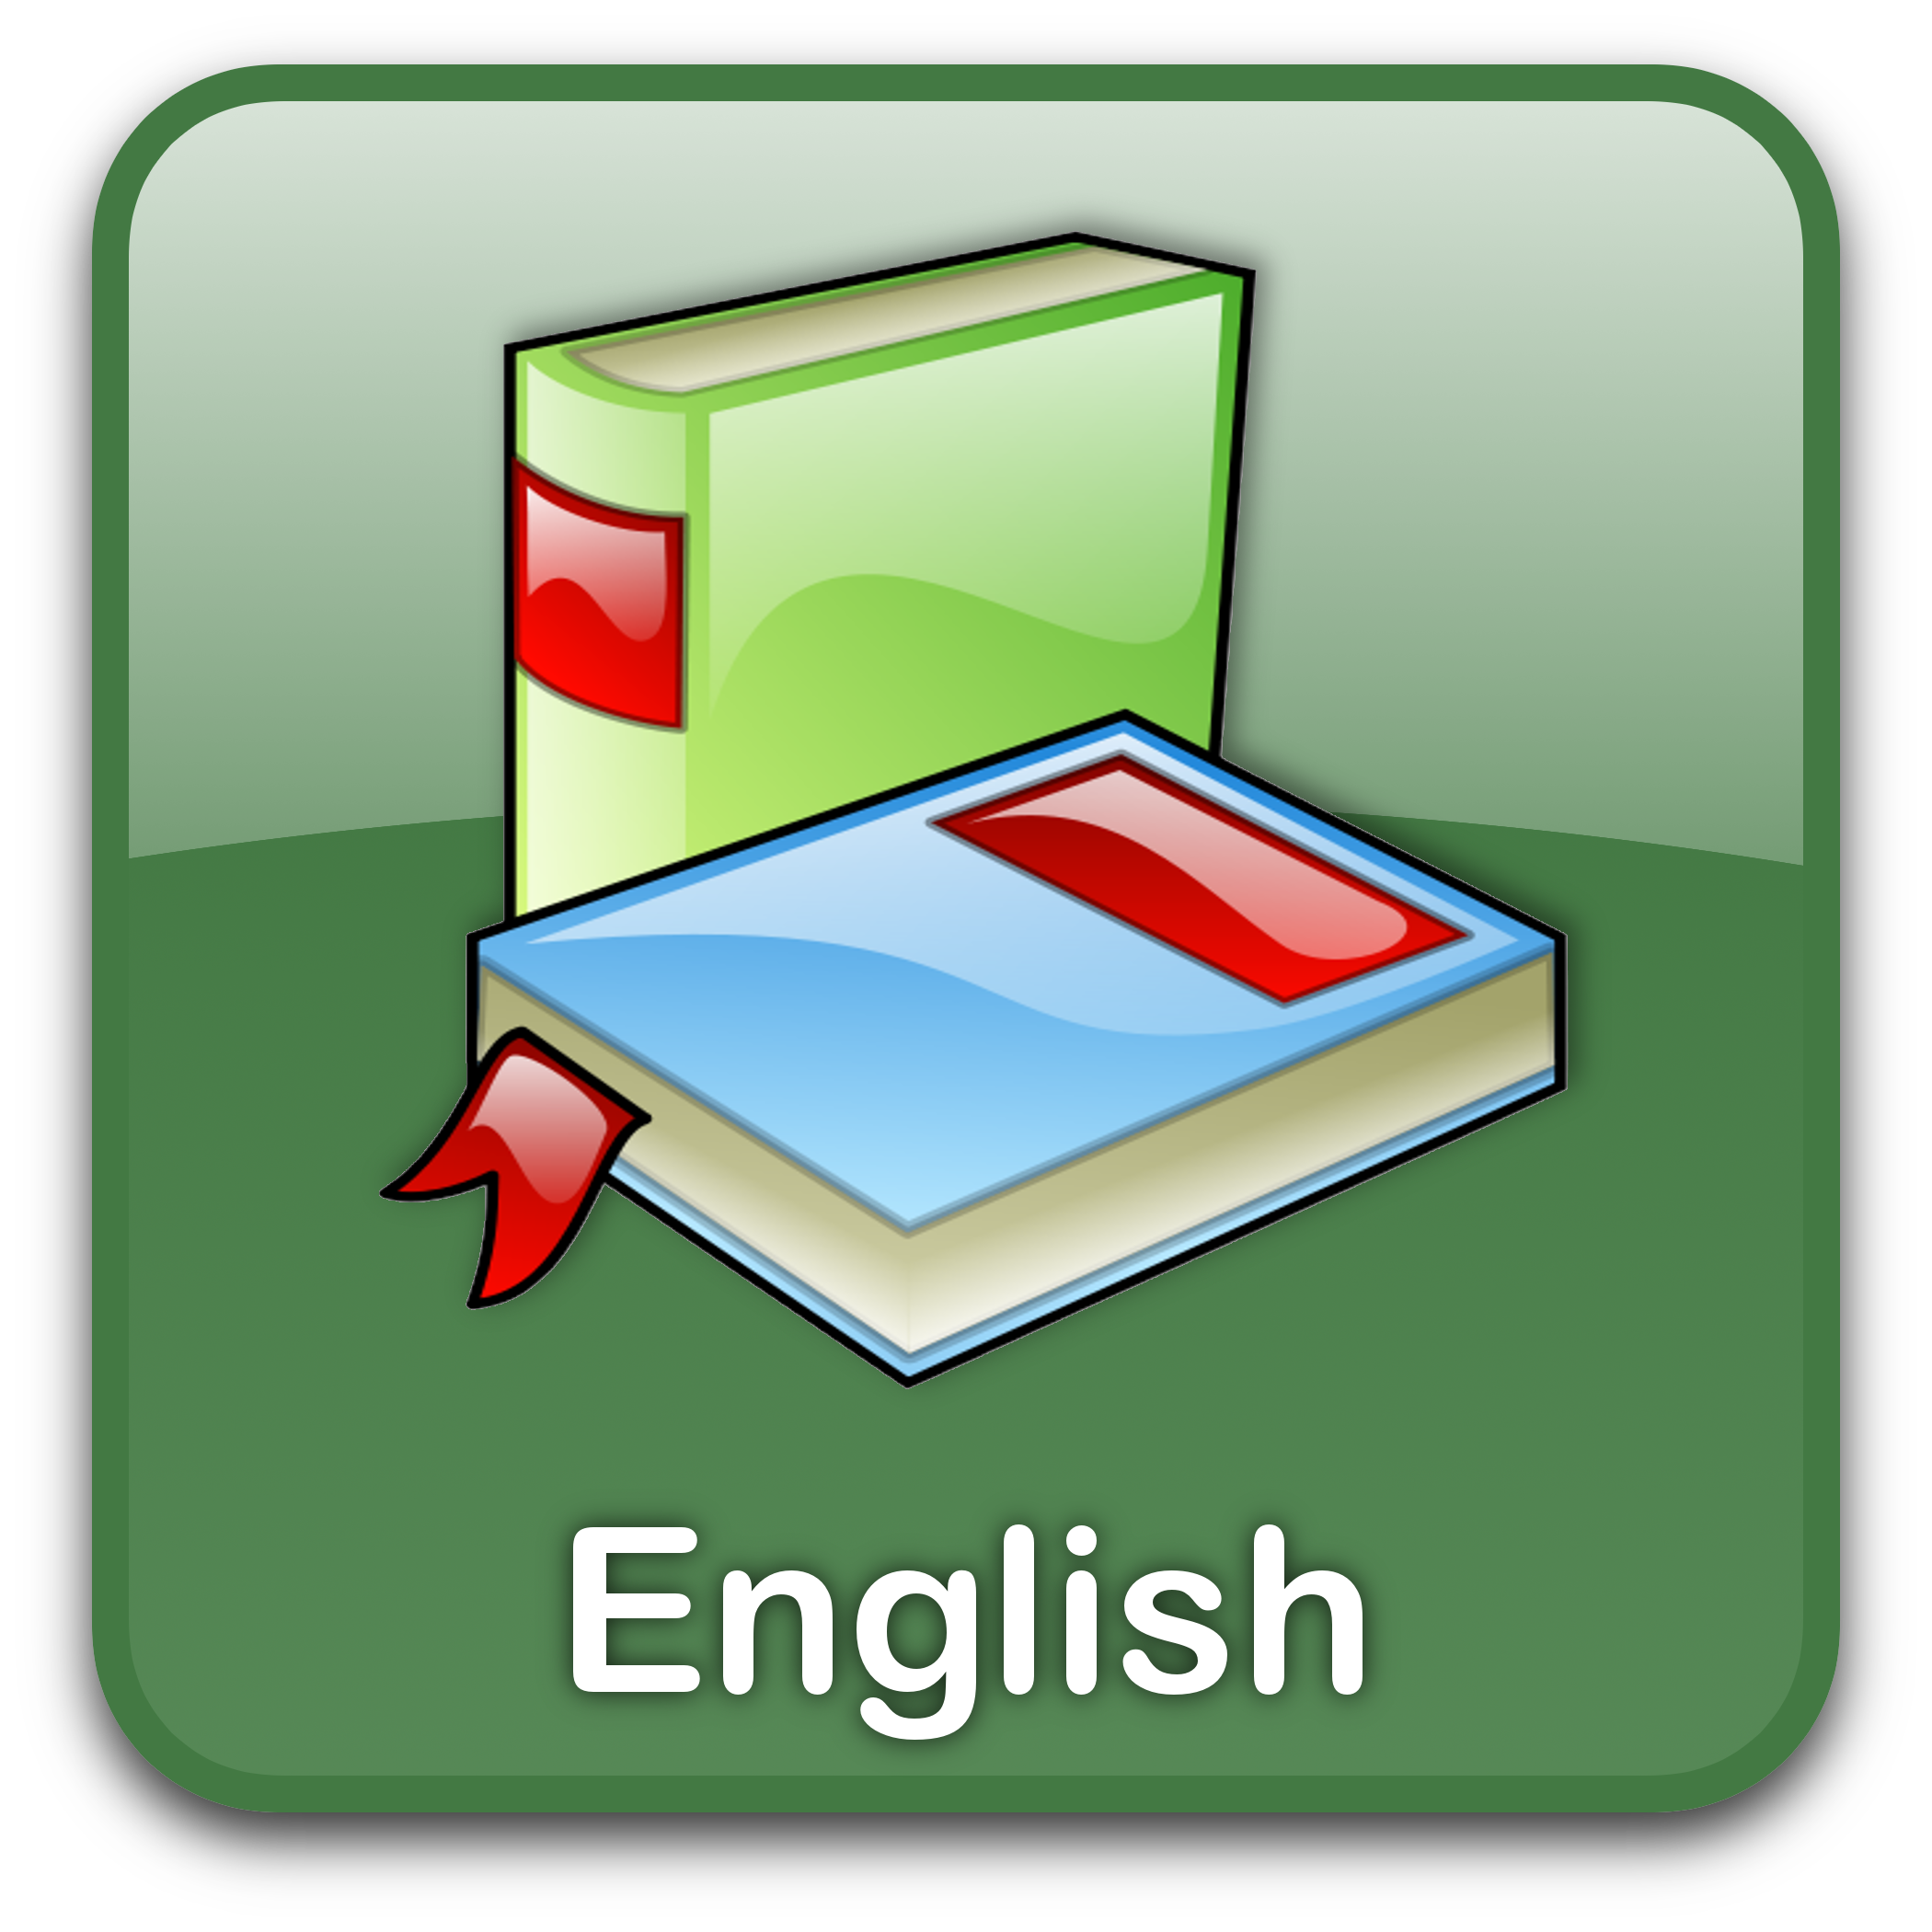 Curriculum clipart subject. Png hd school subjects